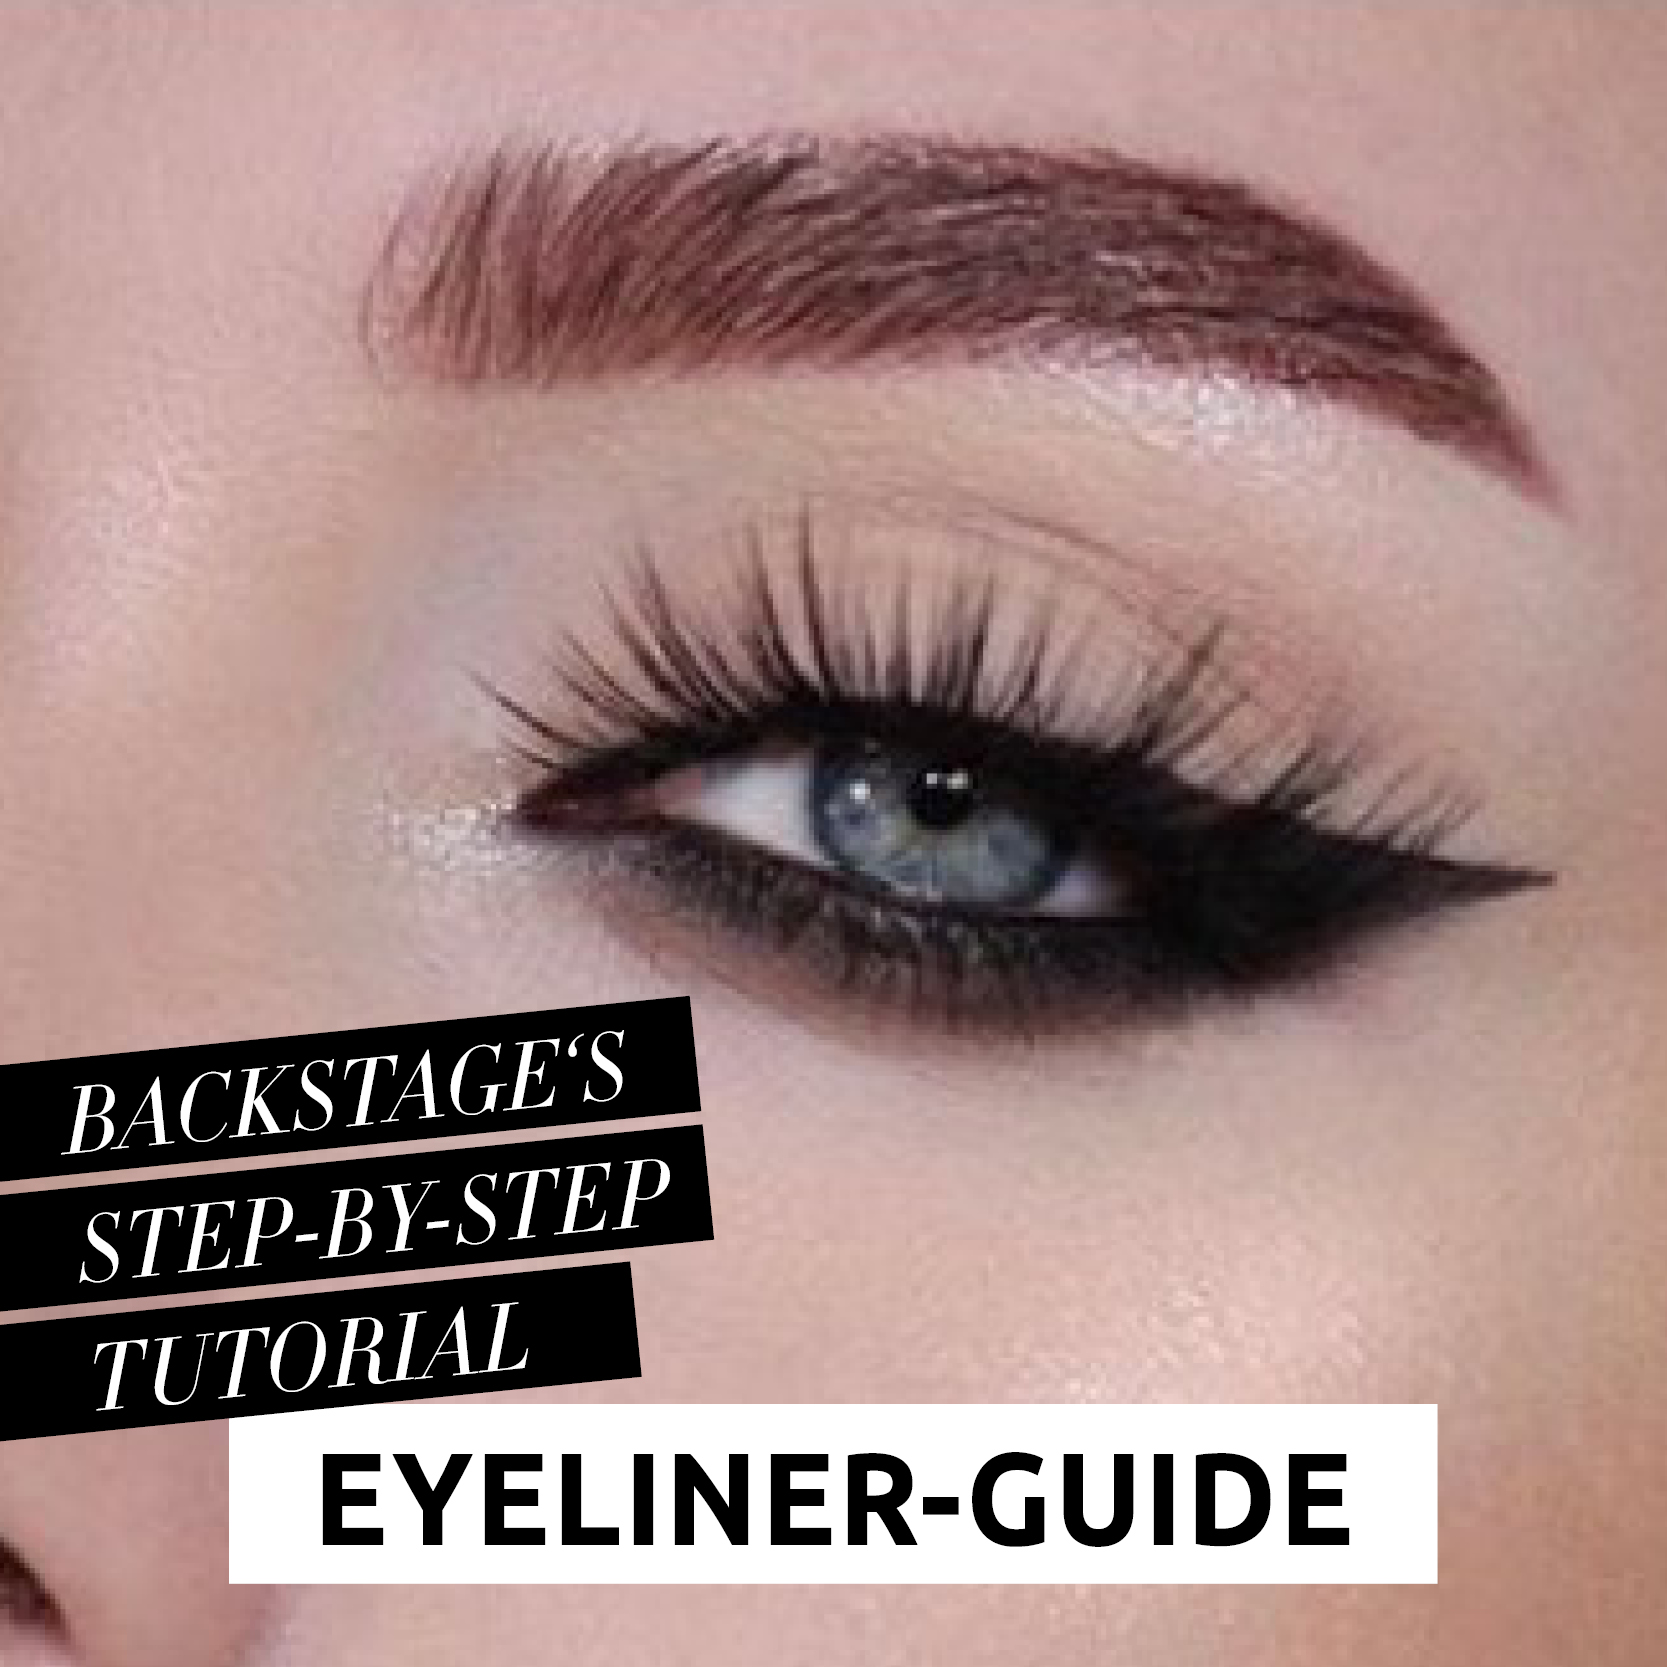 Wing Your Eyeliner - Eyeliner Guide